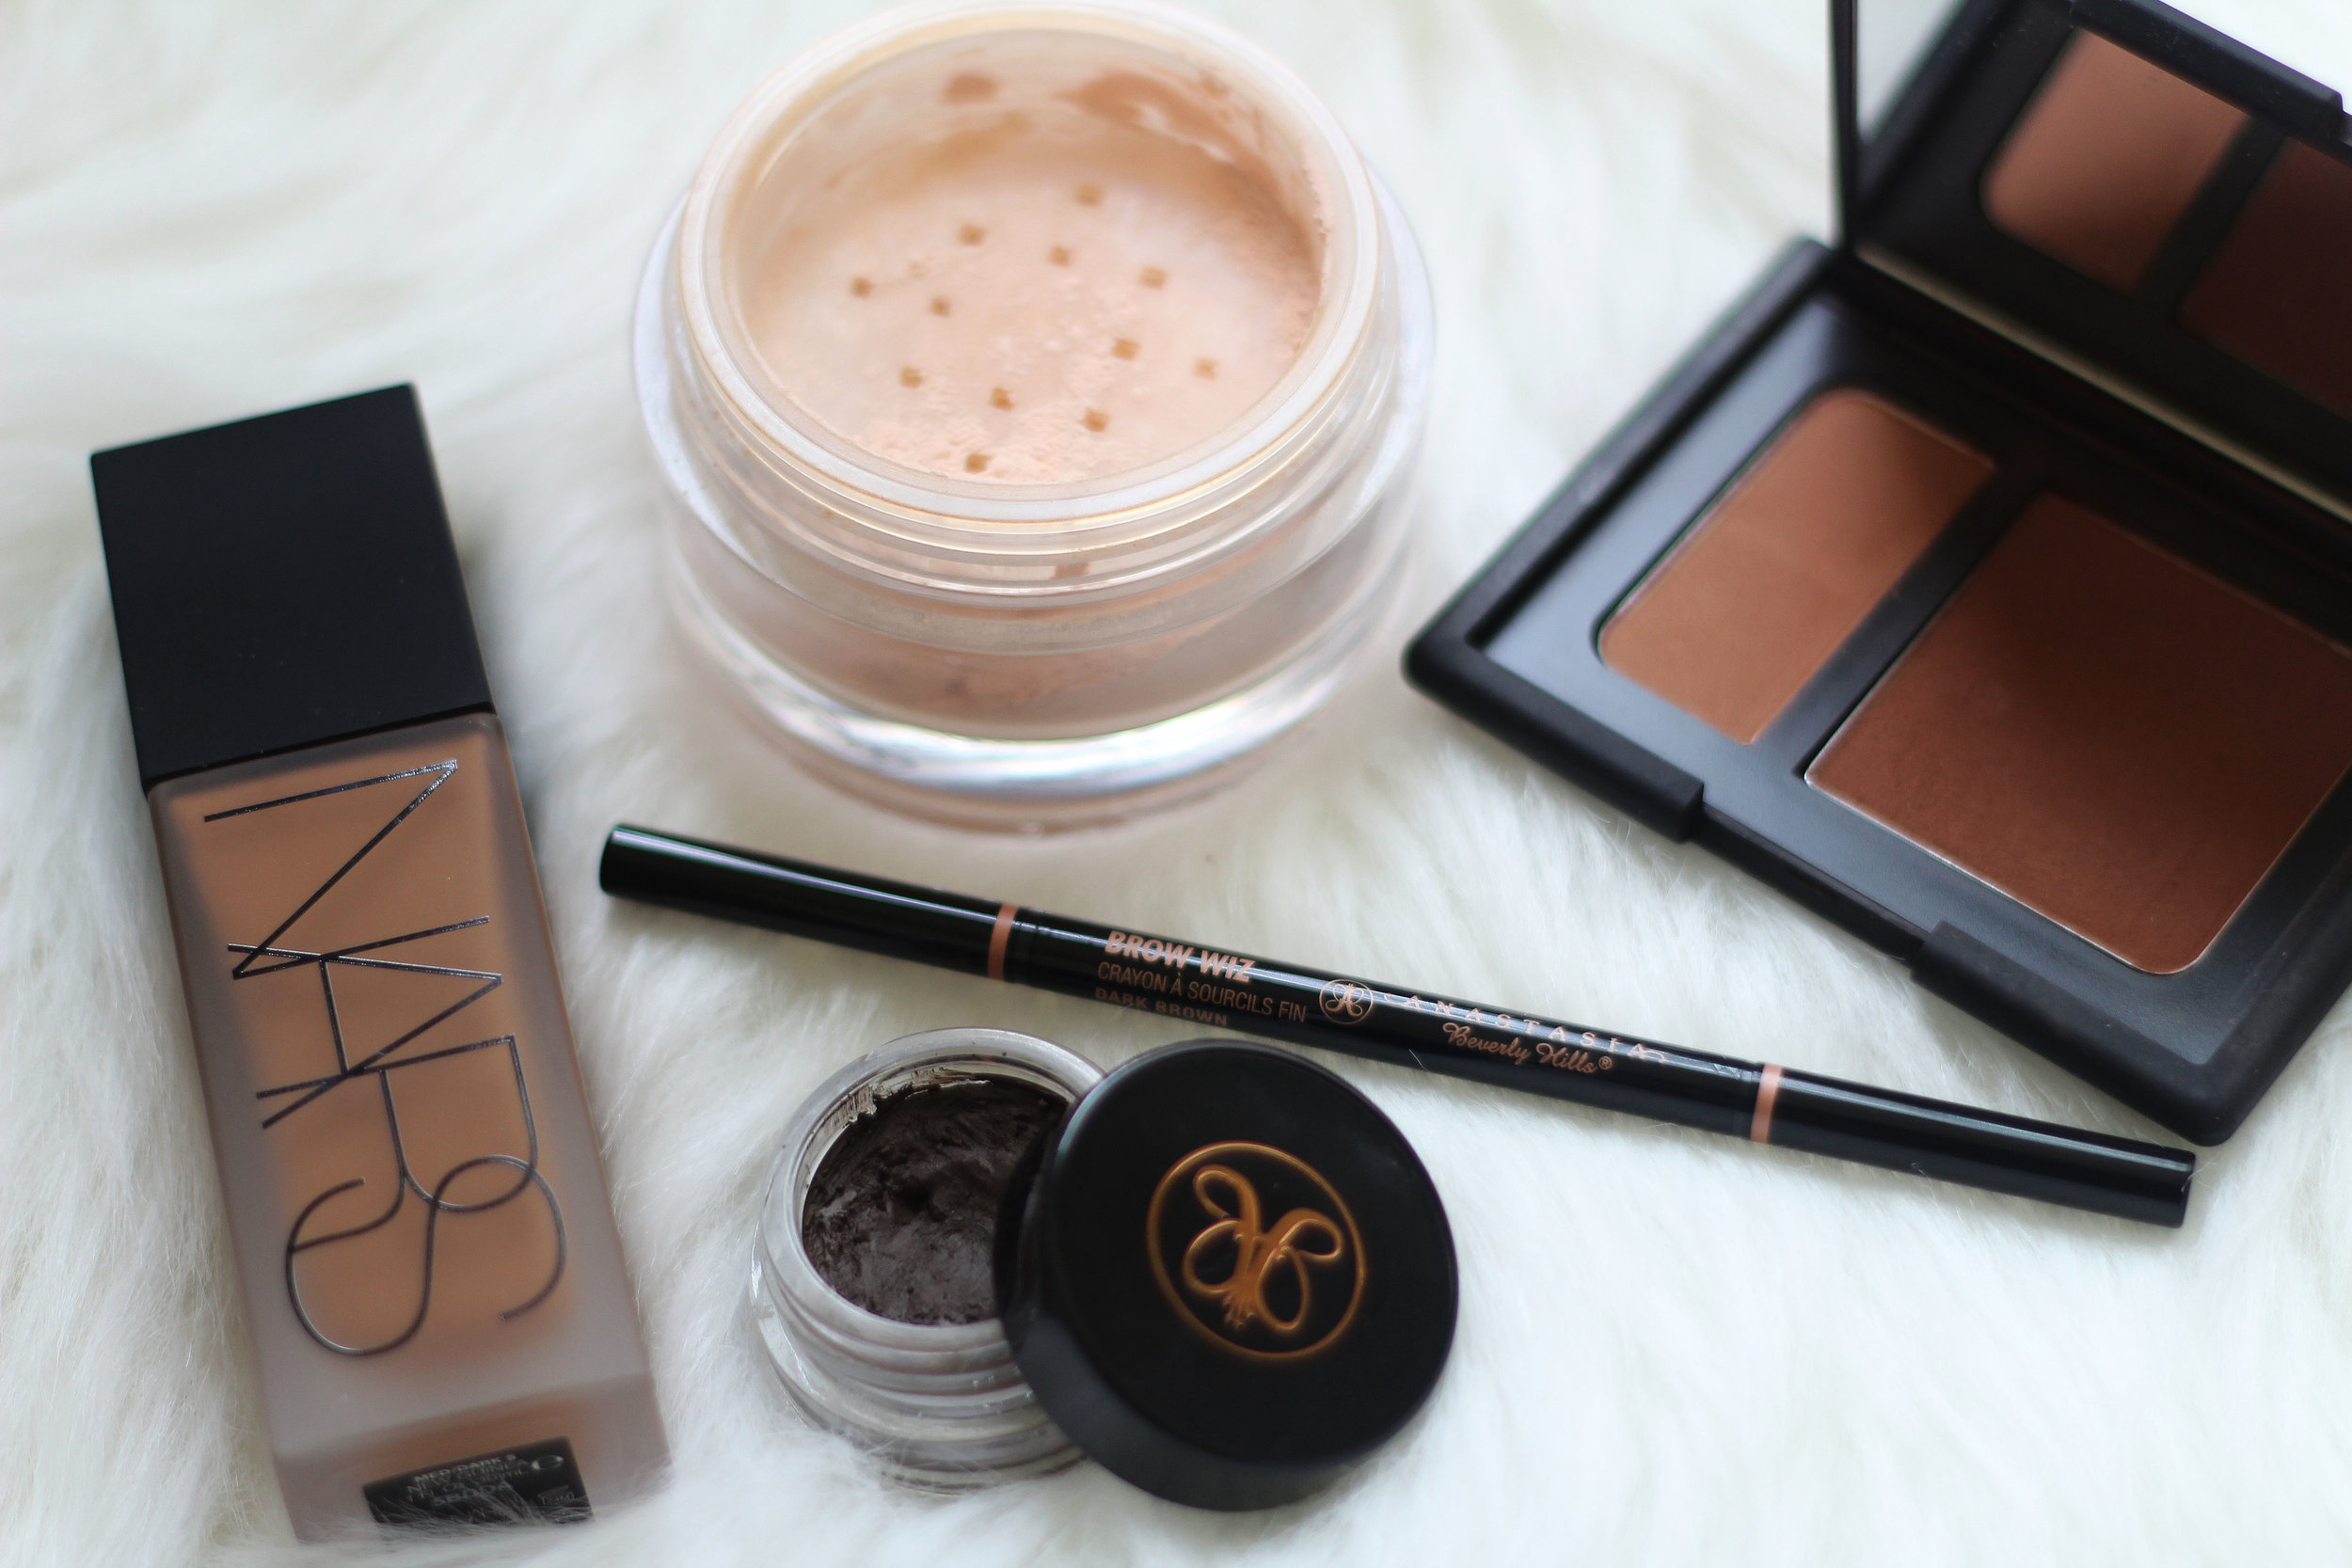 matte complexion products from Nordstrom